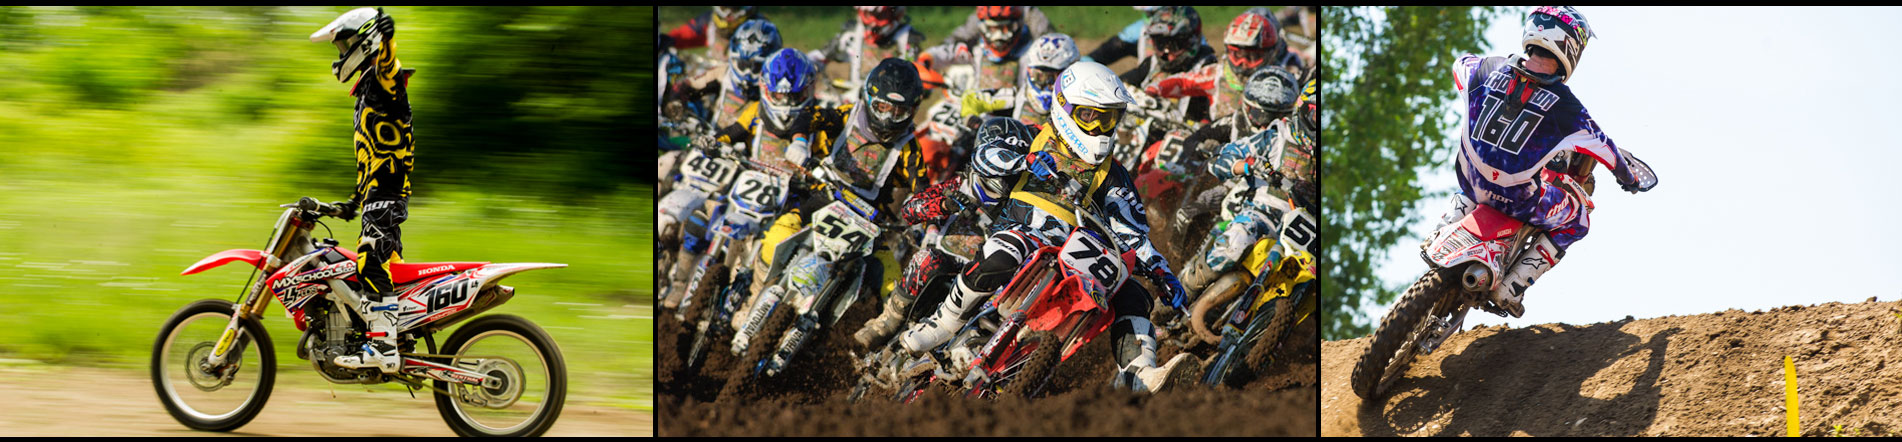 Motocross Training Schools